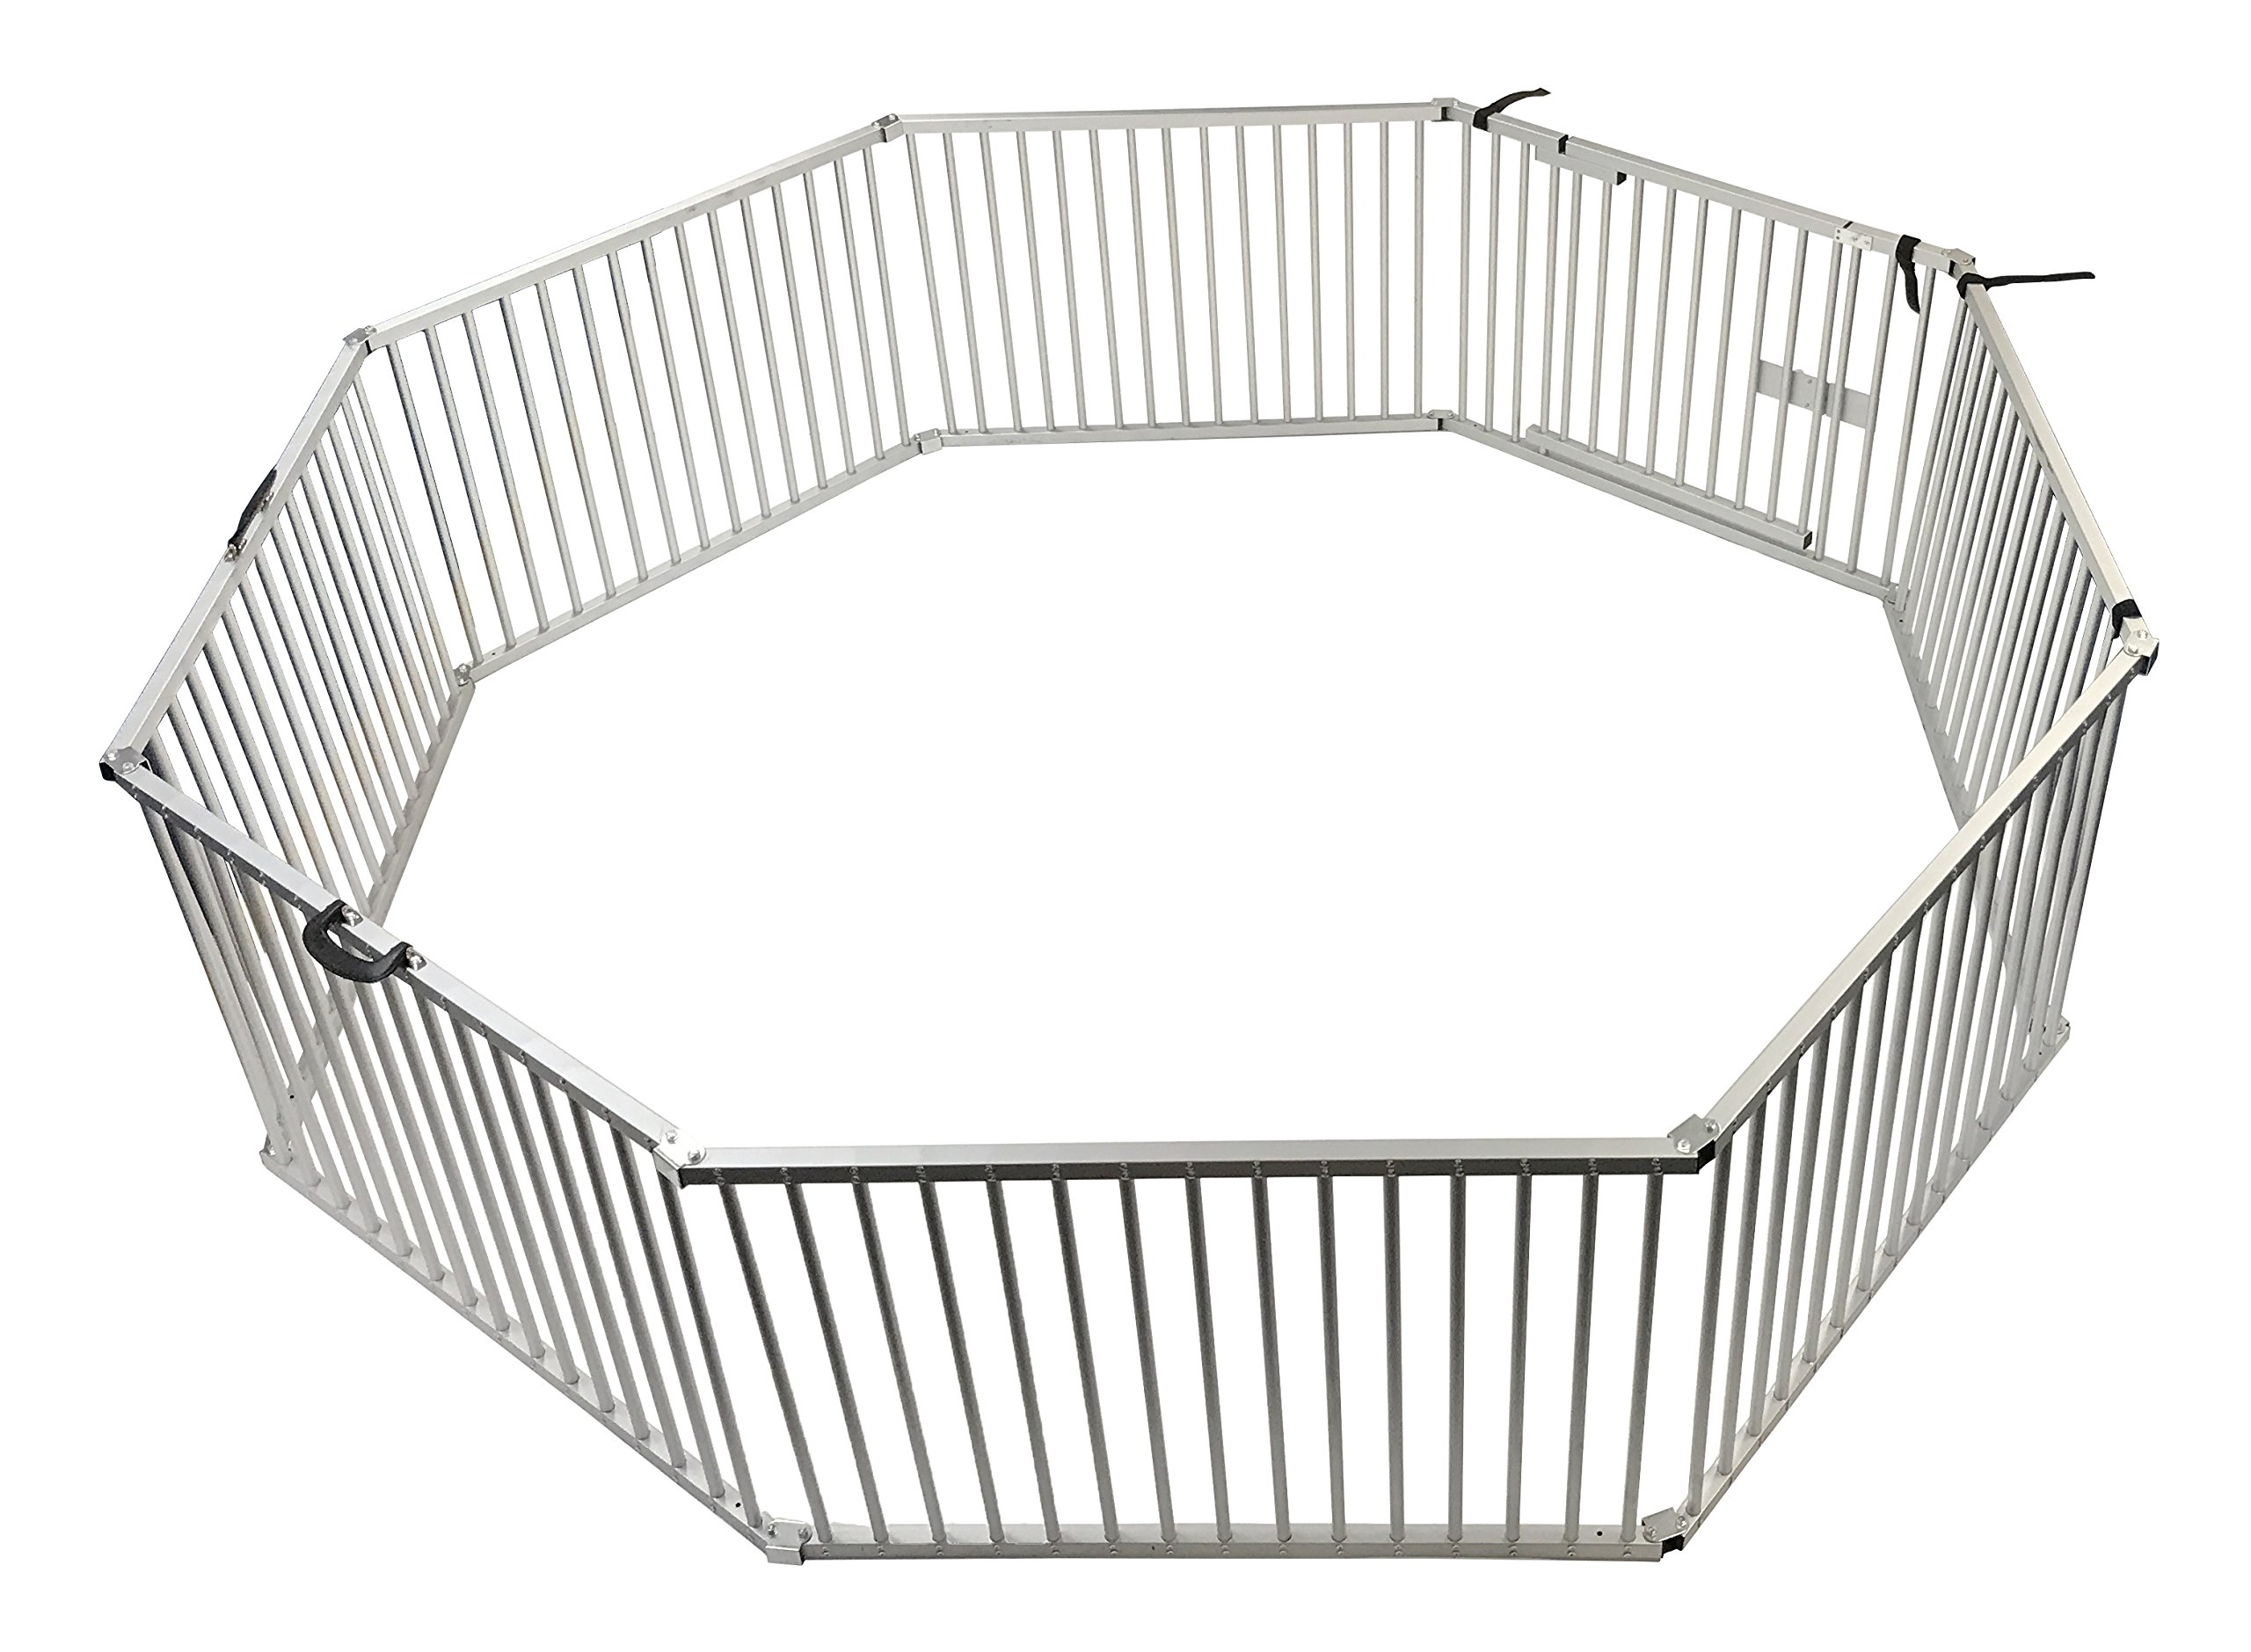 Penn Plax Portable Dog Fence, Exercise Pen Great for Travel, Picnics, and Beach, 8 Piece Aluminum Set